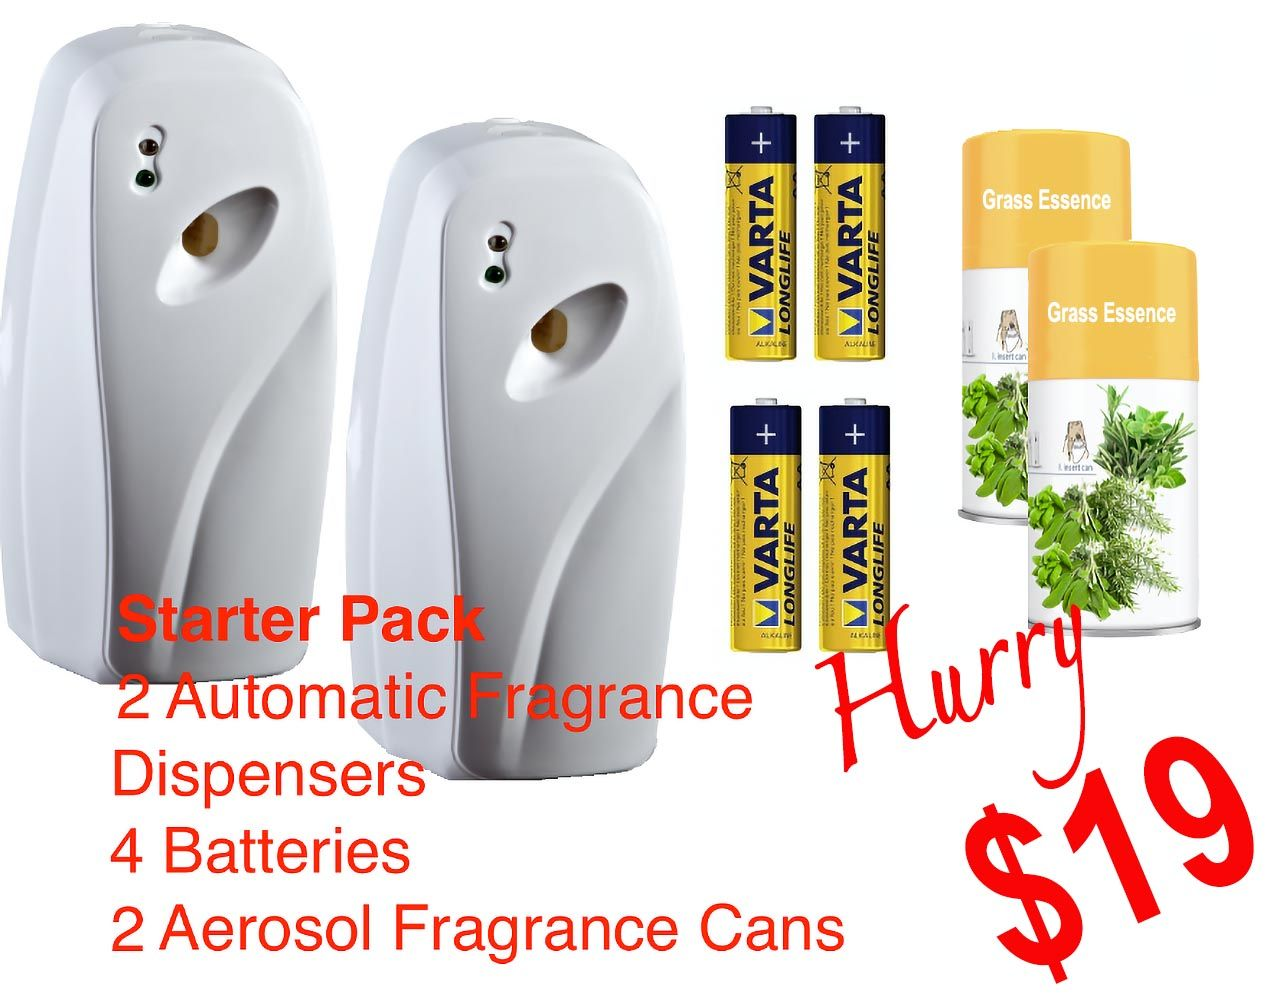 Starter Pack Fragrance Dispensers and Aerosol Cans